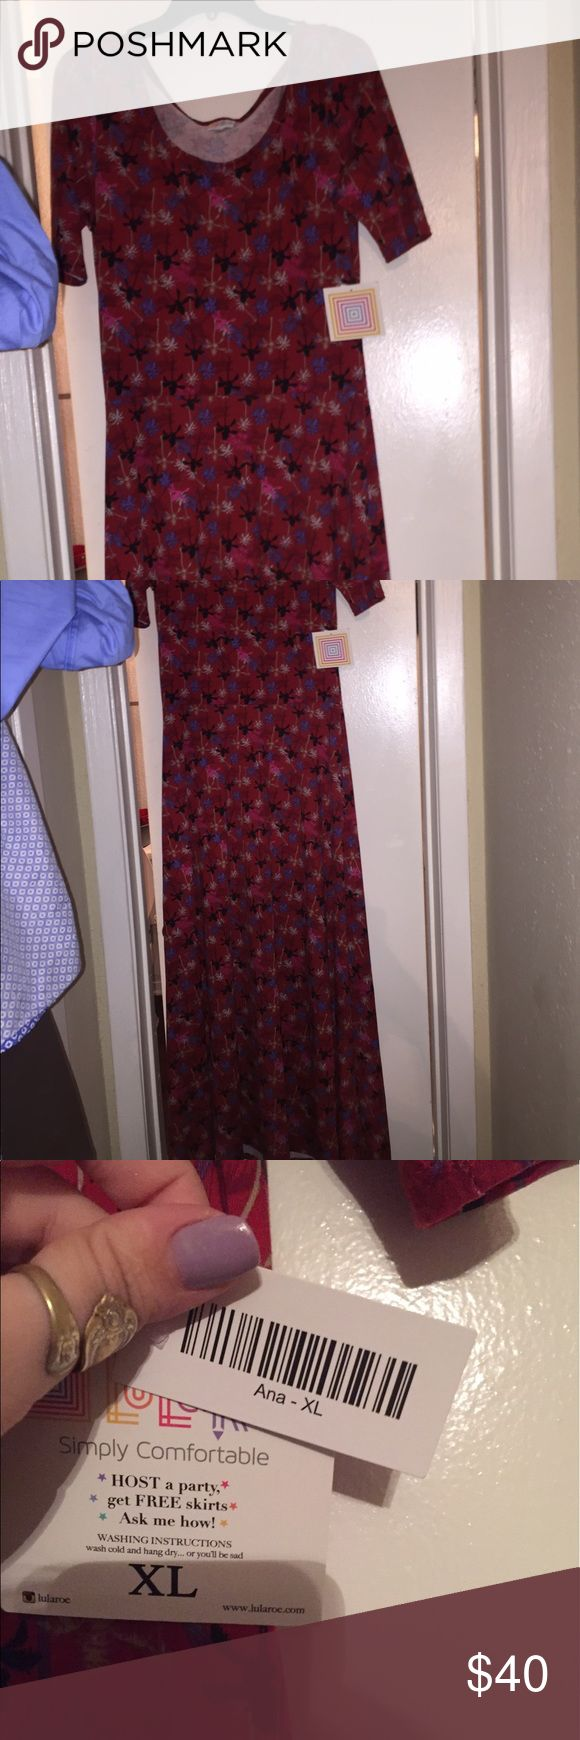 Lula Roe Ana dress Lula Roe dress style Ana it is a maxi dress I bought it and it's a little to snug and to long for me I'm 5'1. Brand new this dress is 60$. Brand new dress will take offers. LuLaRoe Dresses Maxi